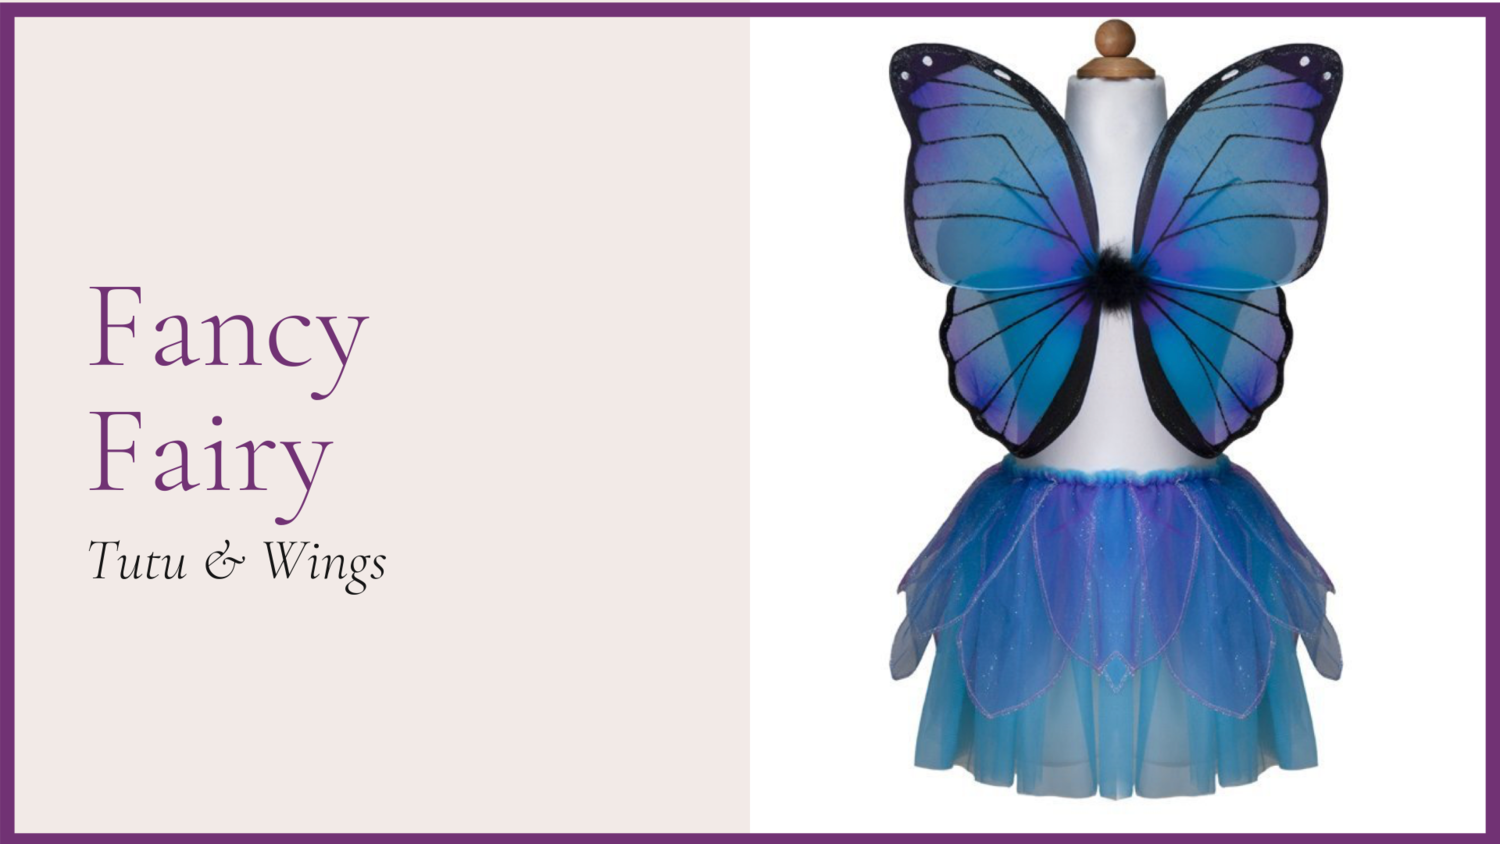 STORYBOOK: Fancy Fairy - Midtnight Blue